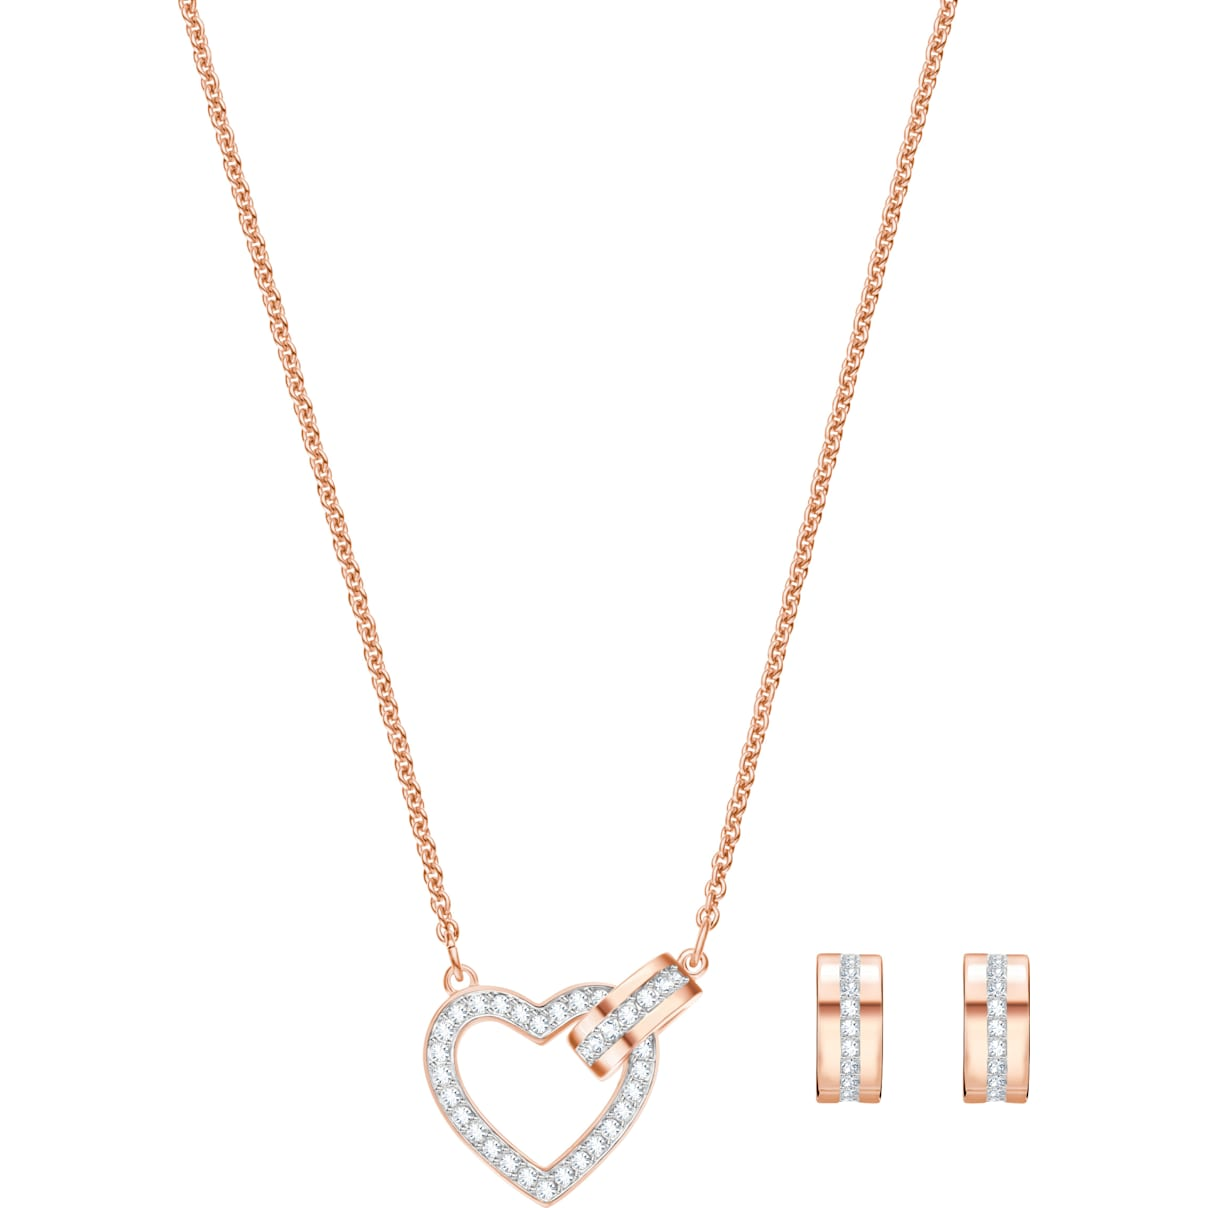 Swarovski Lovely Set, White, Rose-gold tone plated